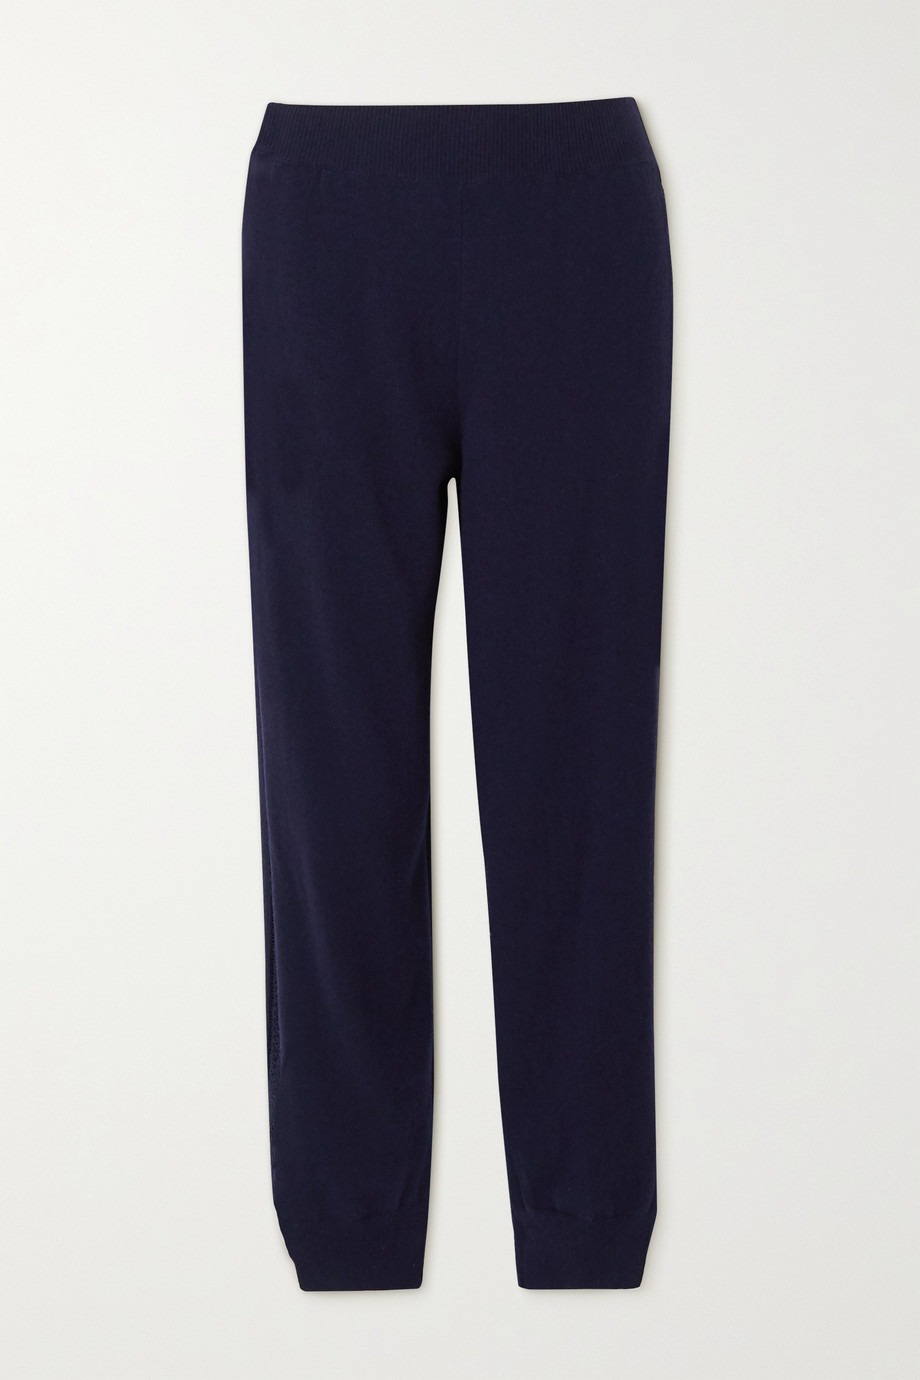 Stella McCartney Crochet-trimmed cashmere and wool-blend track pants